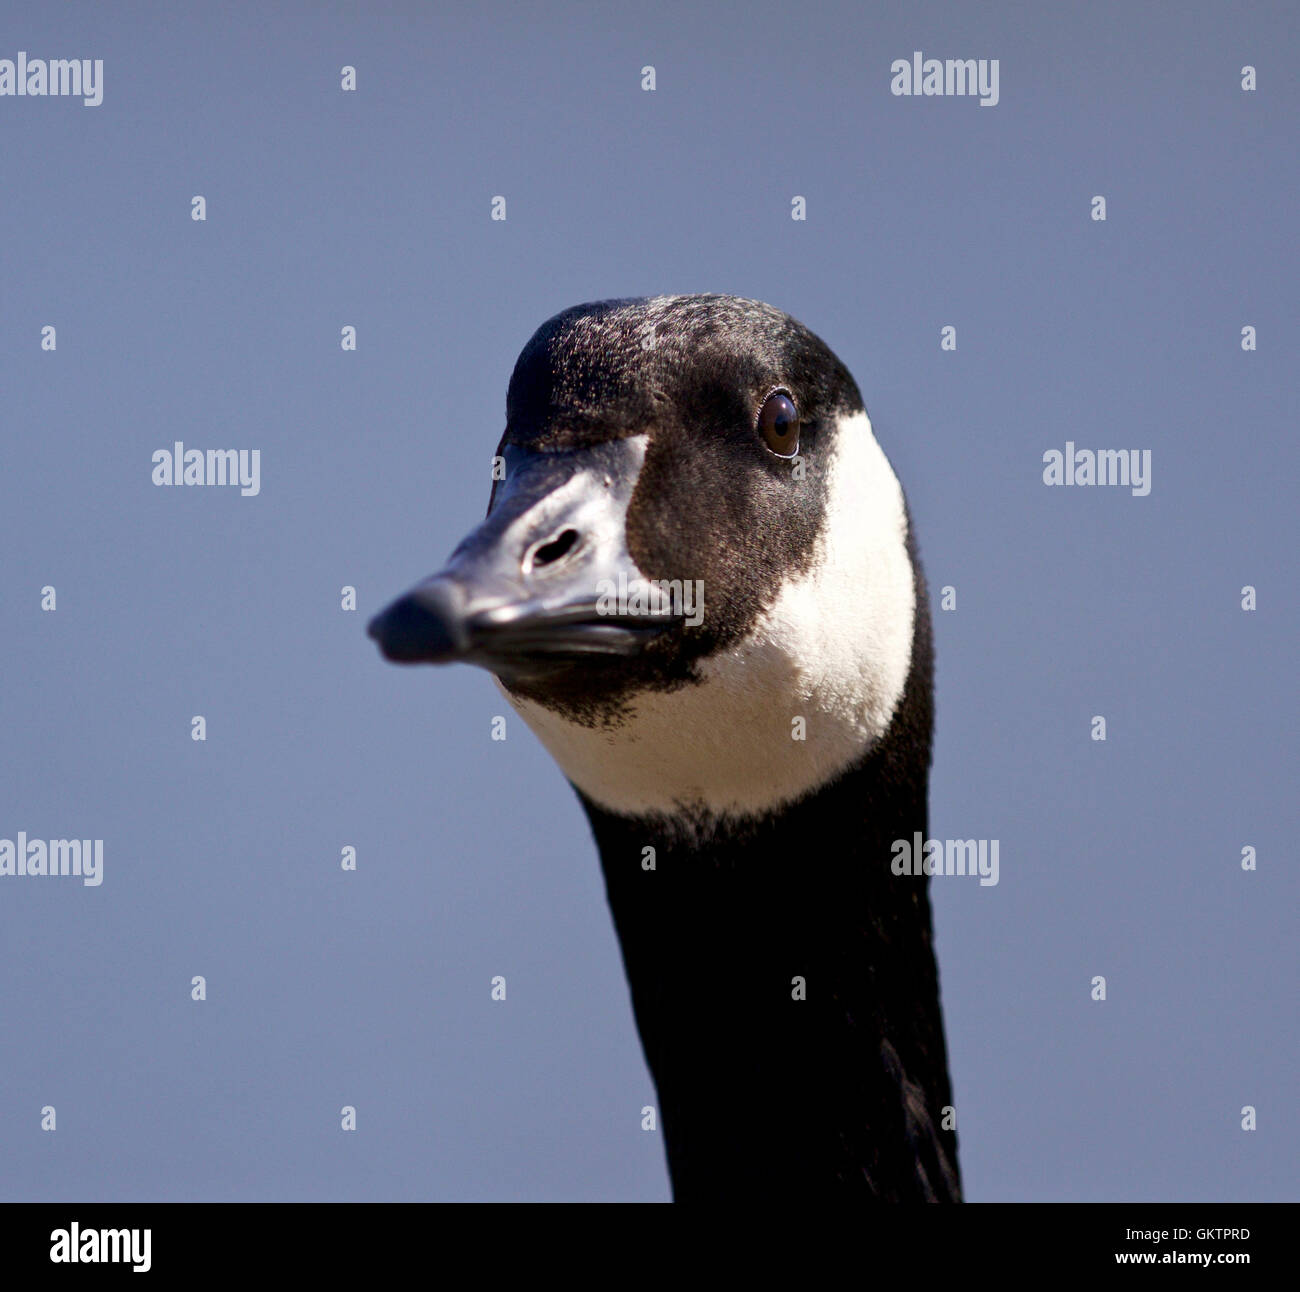 Isolated image with a cute canada goose stock photo royalty free isolated image with a cute canada goose biocorpaavc Gallery